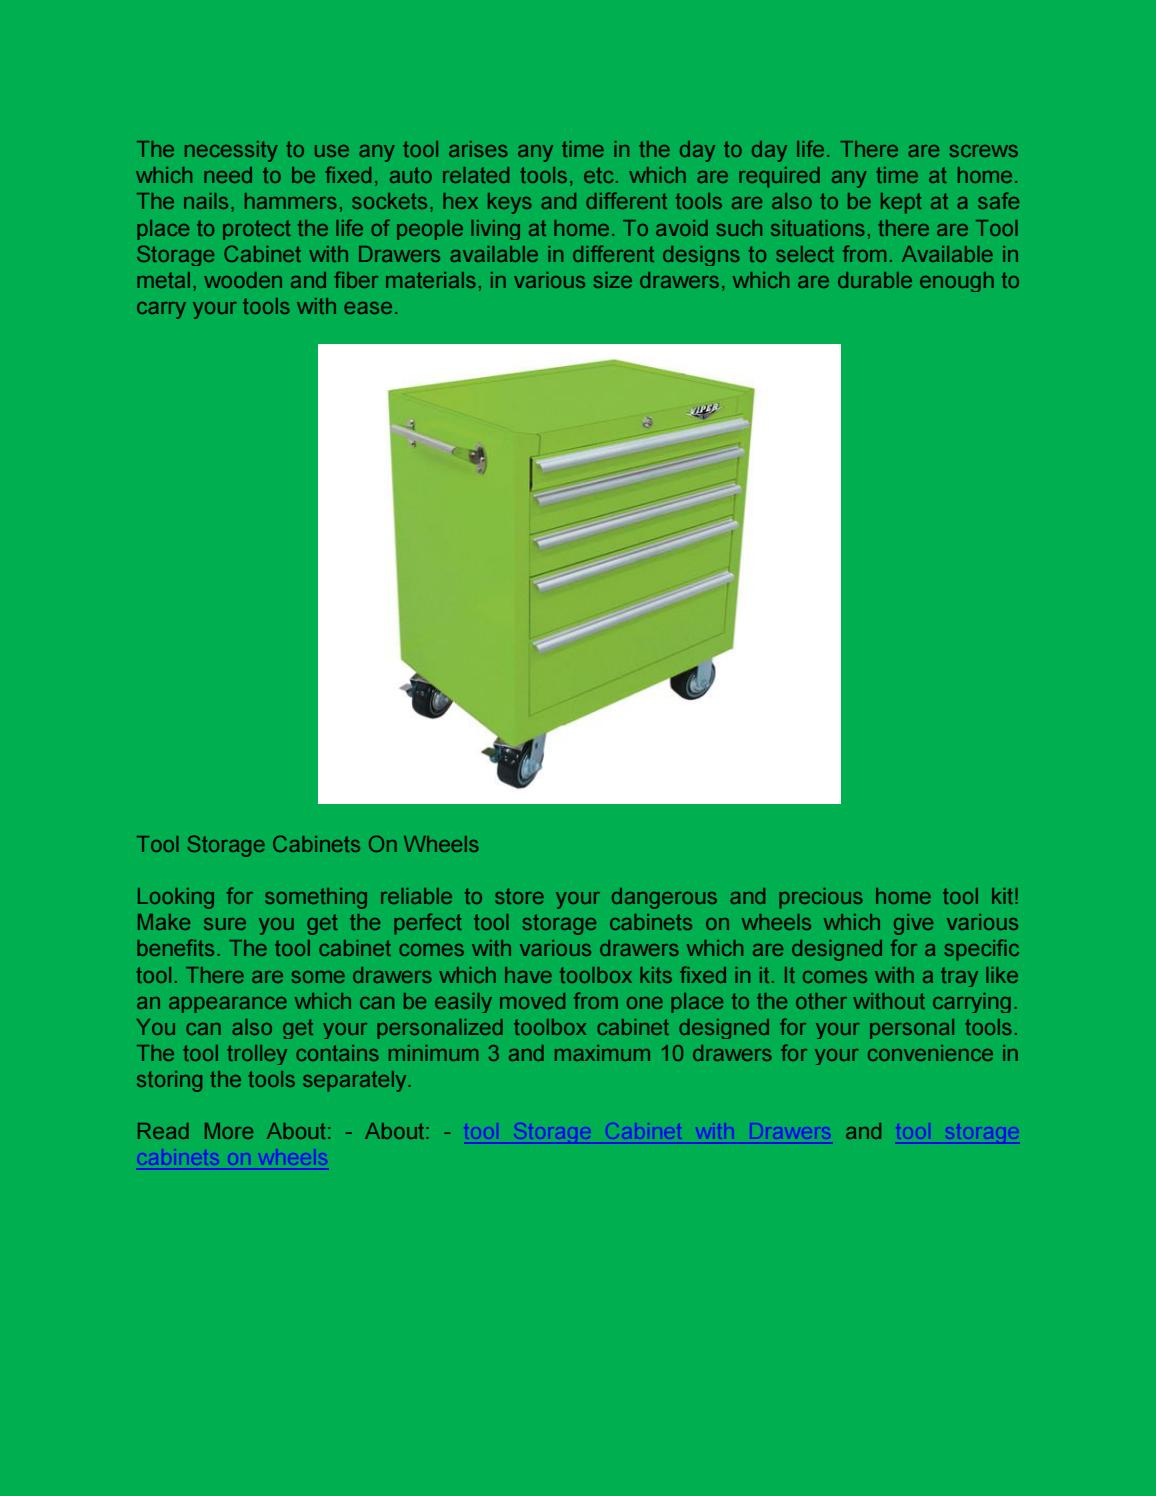 Tool Storage Cabinets On Wheels By